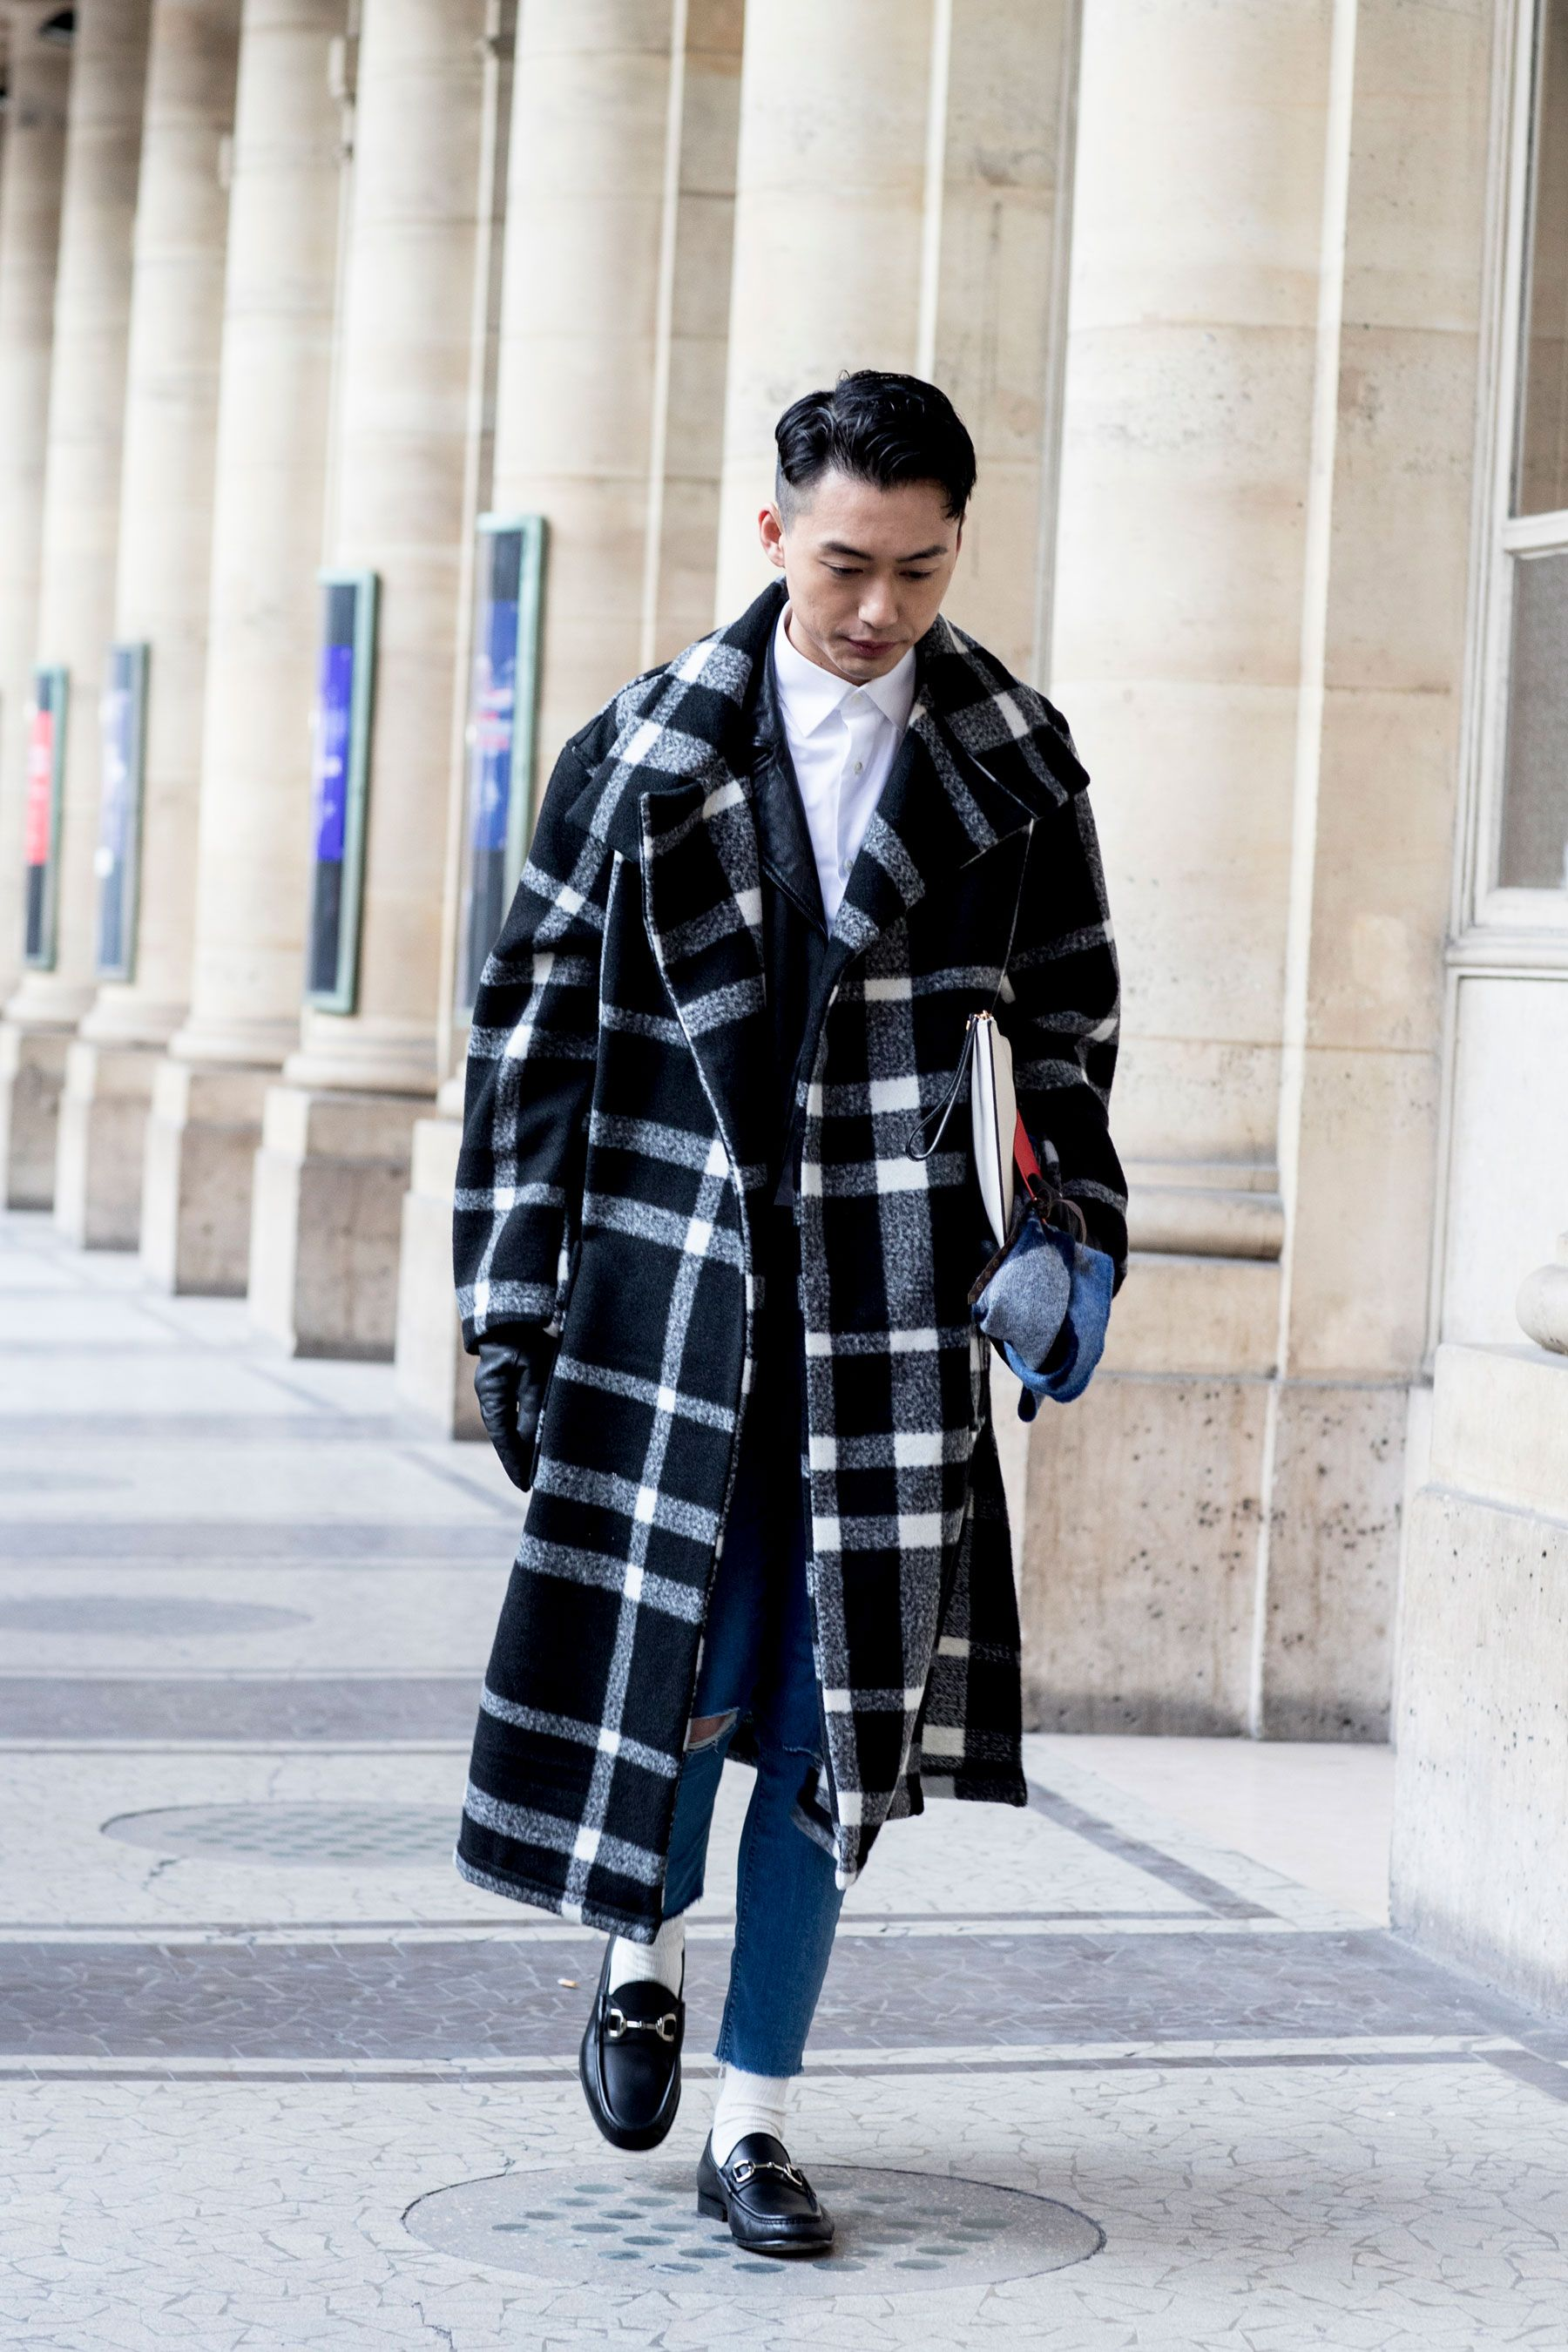 Paris men 39 s fashion week street style day 2 fall 2017 streets pinterest street styles Fashion street style pinterest